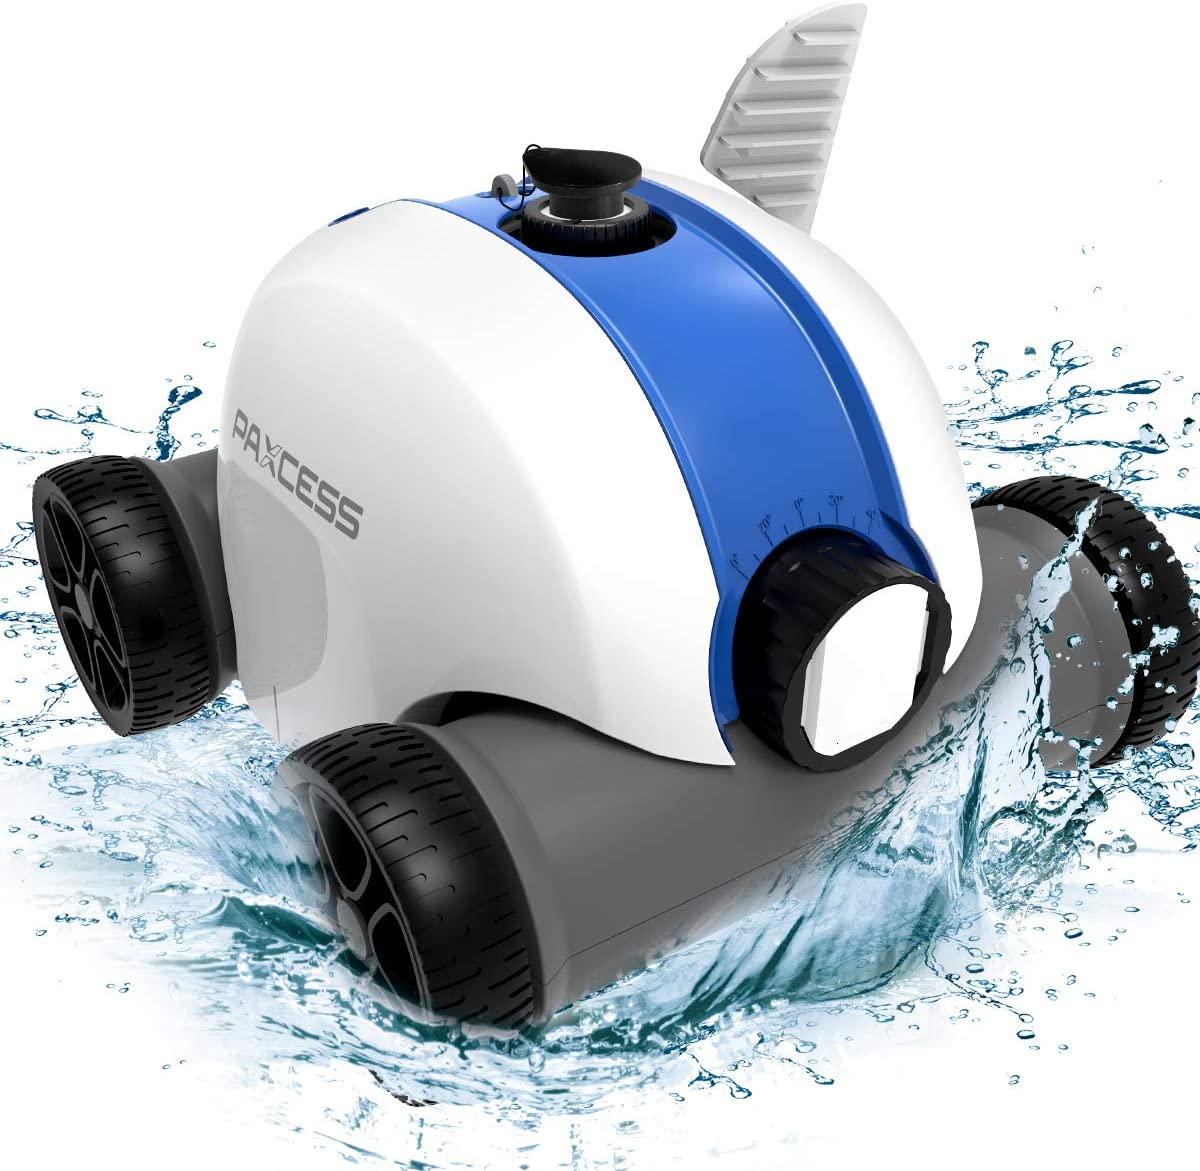 PAXCESS Robotic Pool Cleaner